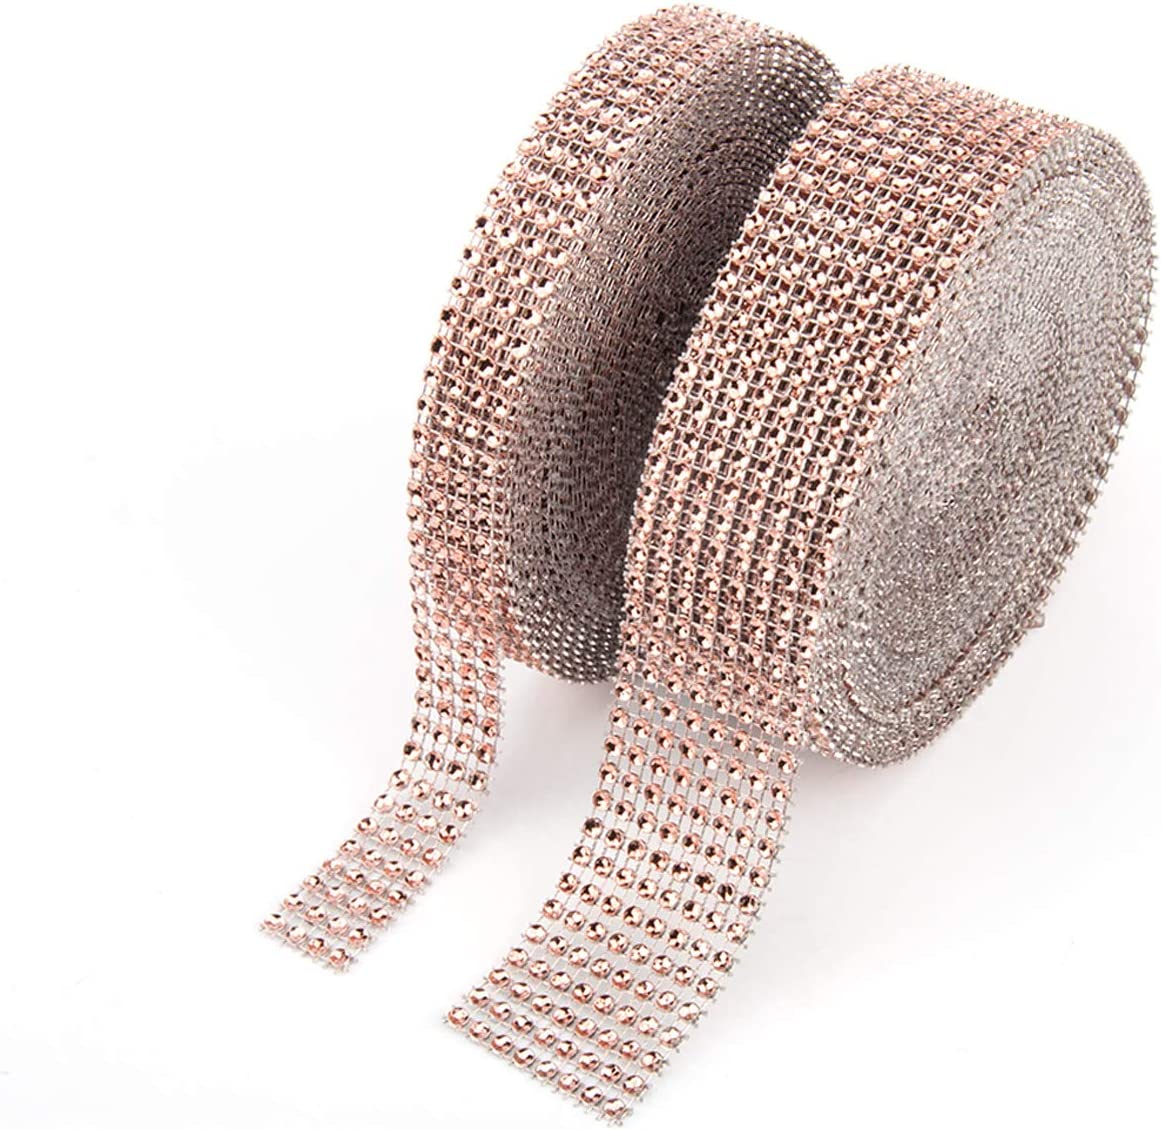 BTSD-home 1 Roll 4 Row 10 Yard and 1 Roll 8 Row 10 Yard Acrylic Rhinestone Diamond Ribbon for Wedding Cakes, Birthday Decorations, Baby Shower Events, Arts and Crafts Projects (2 Rolls, Champagne)